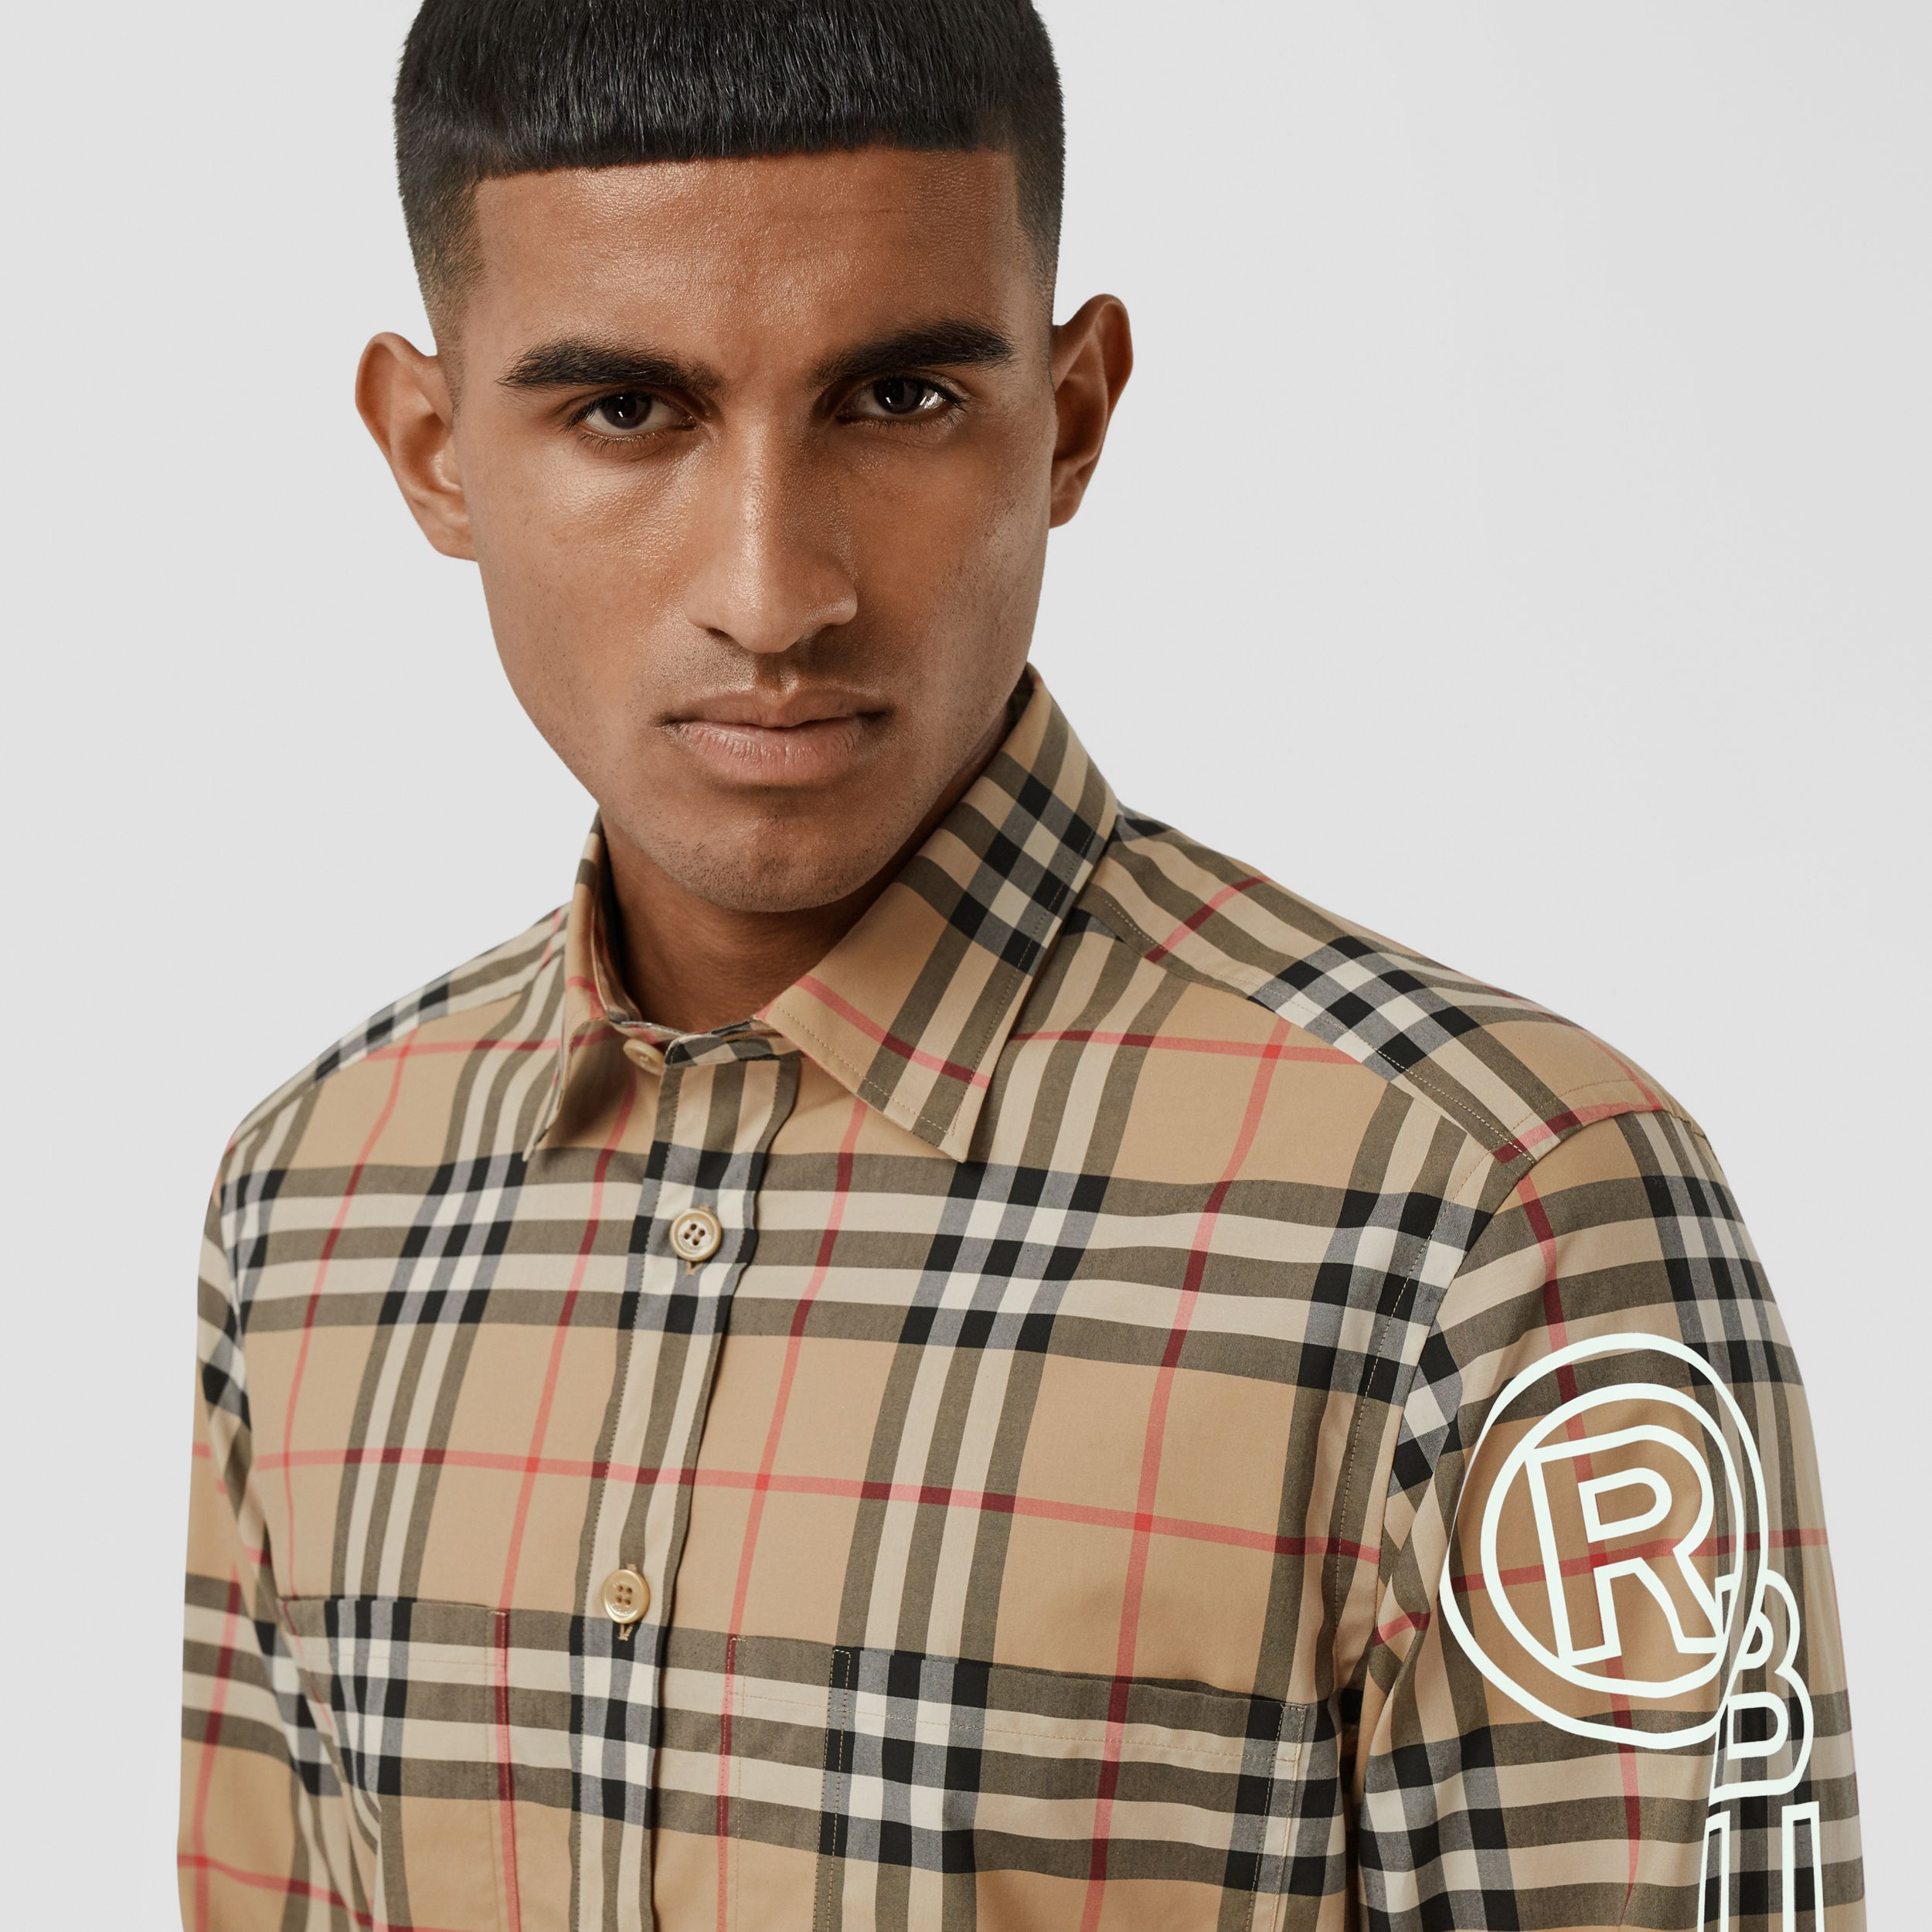 Logo Print Vintage Check Cotton Poplin Shirt in Archive Beige - Men | Burberry - 2